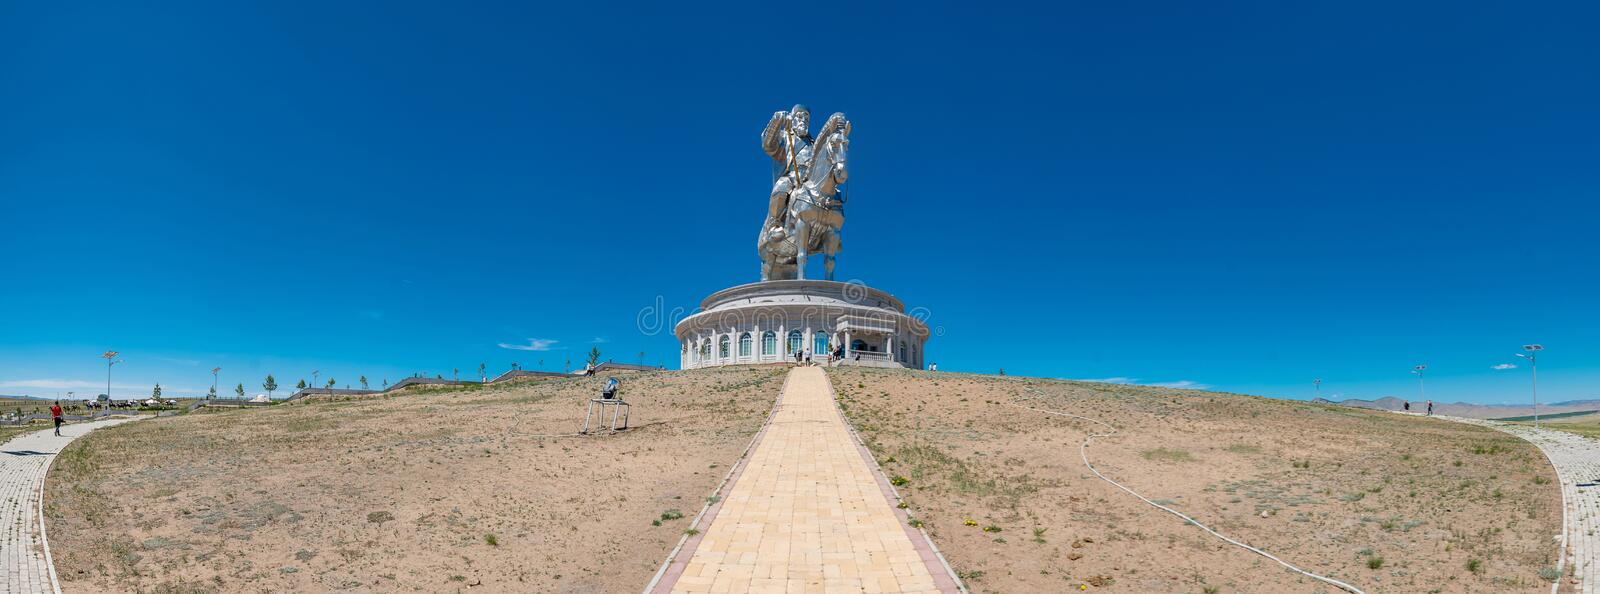 Genghis khan memorial royalty free stock photography